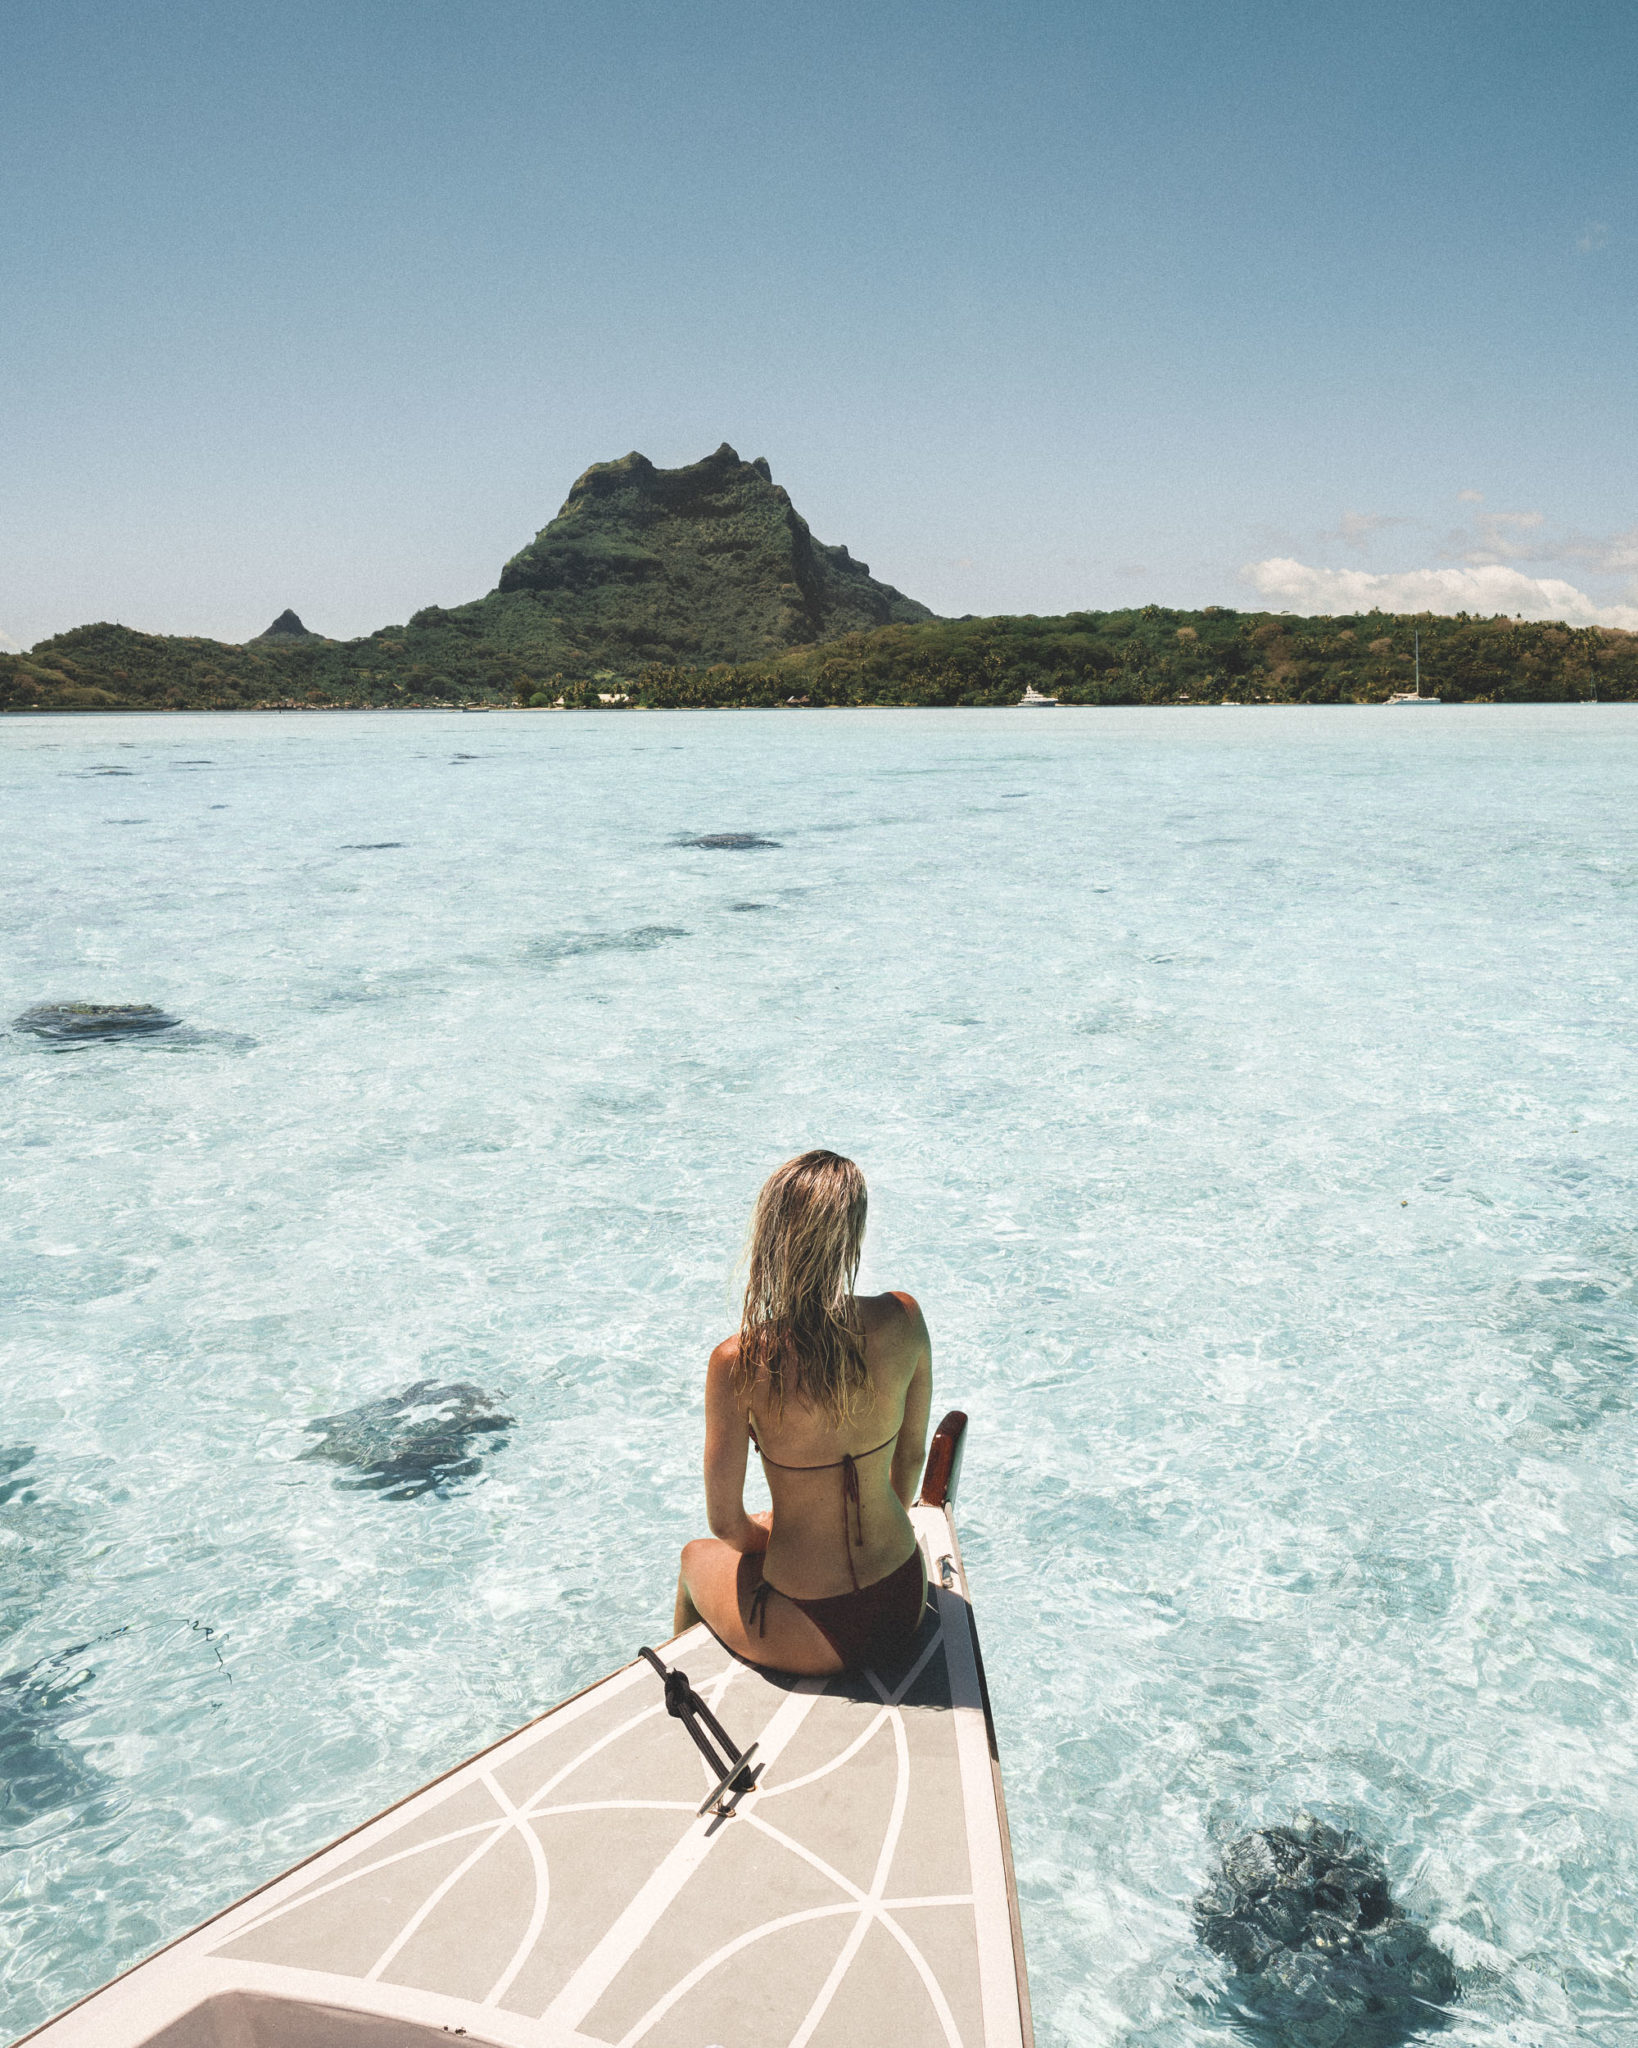 Swimming with sting rays on our honeymoon in bora bora tahiti via @finduslost